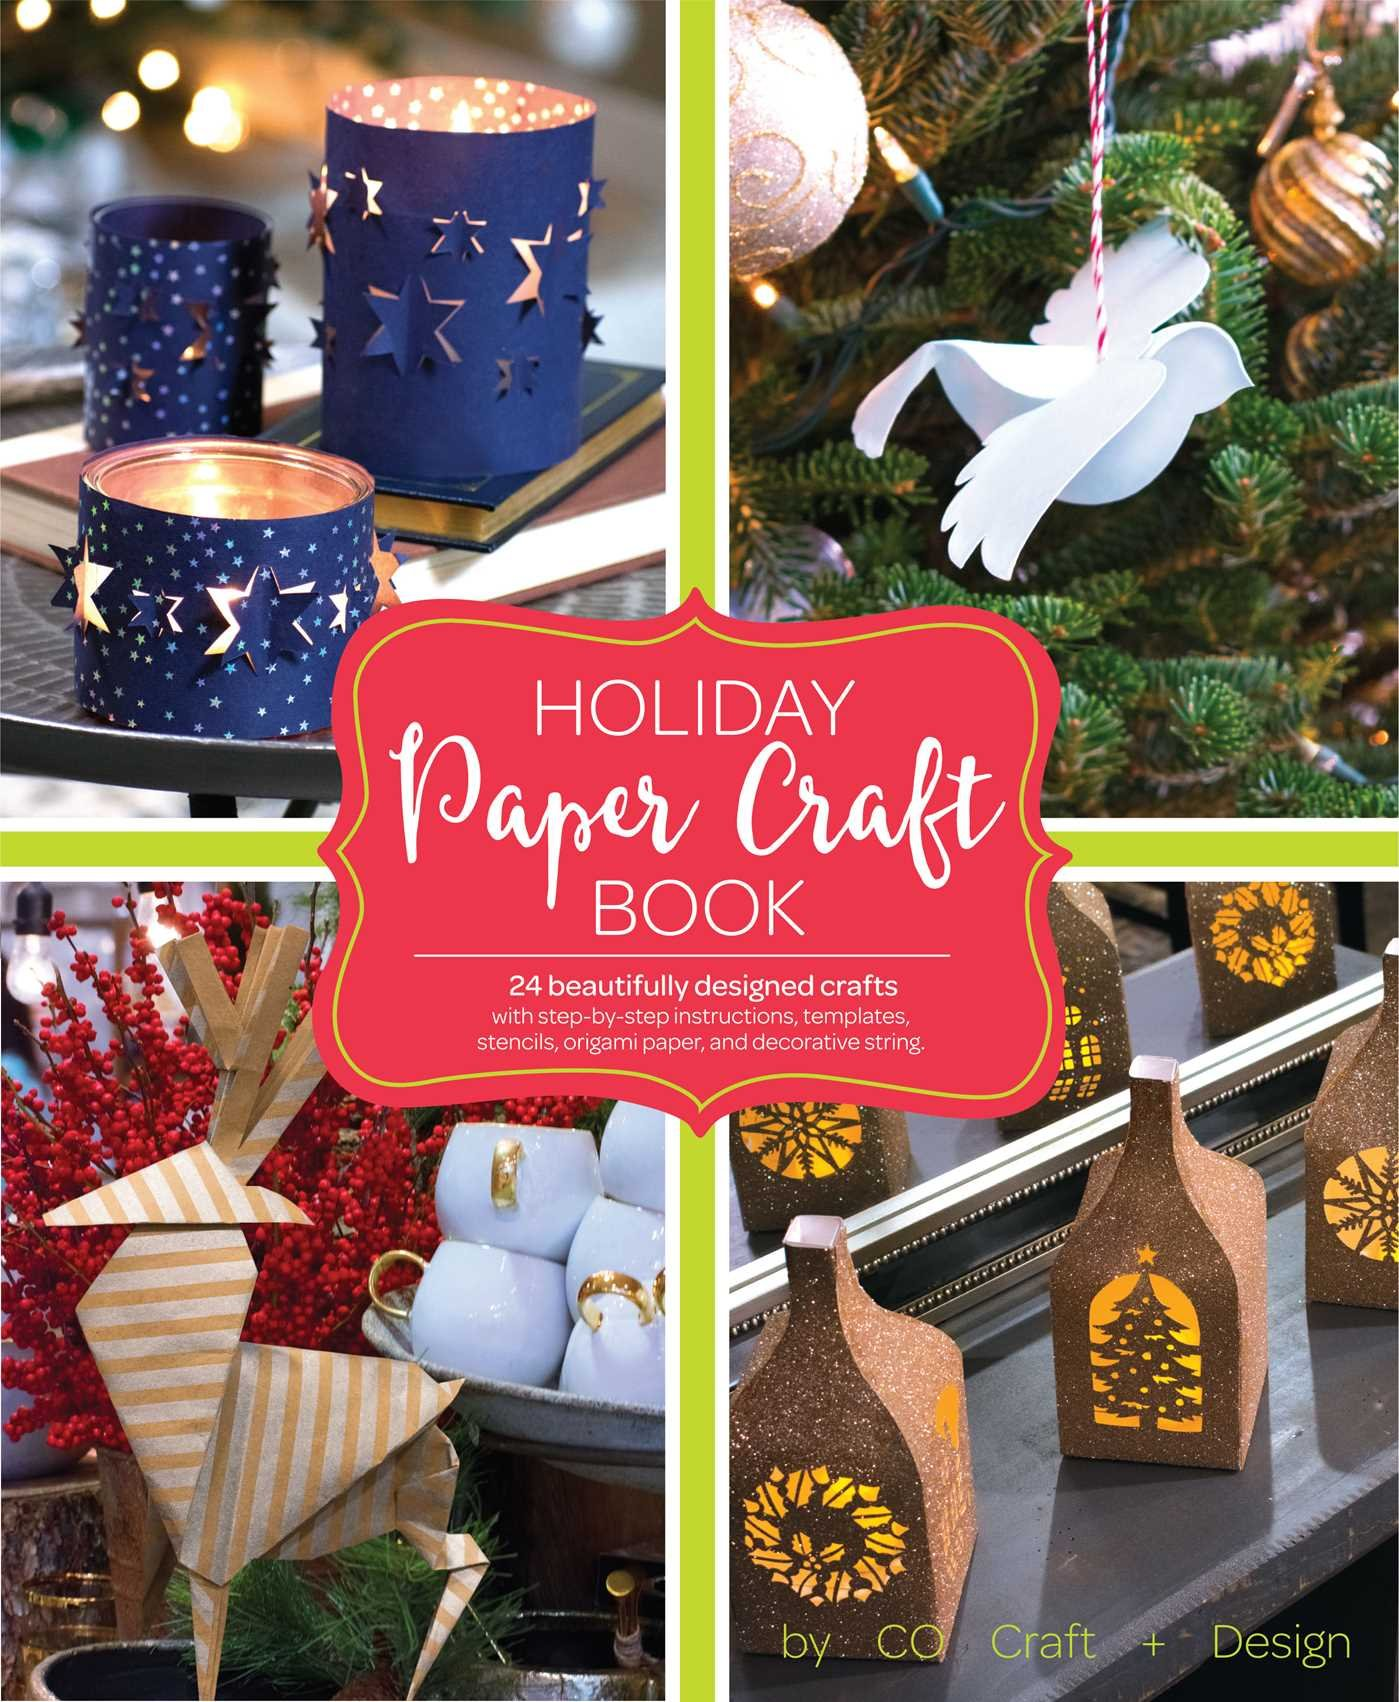 Amazon Com Holiday Paper Crafts Create Over 25 Beautifully Designed Holiday Craft Decorations For Your Home 9781681882604 Larimer Craft Design Books